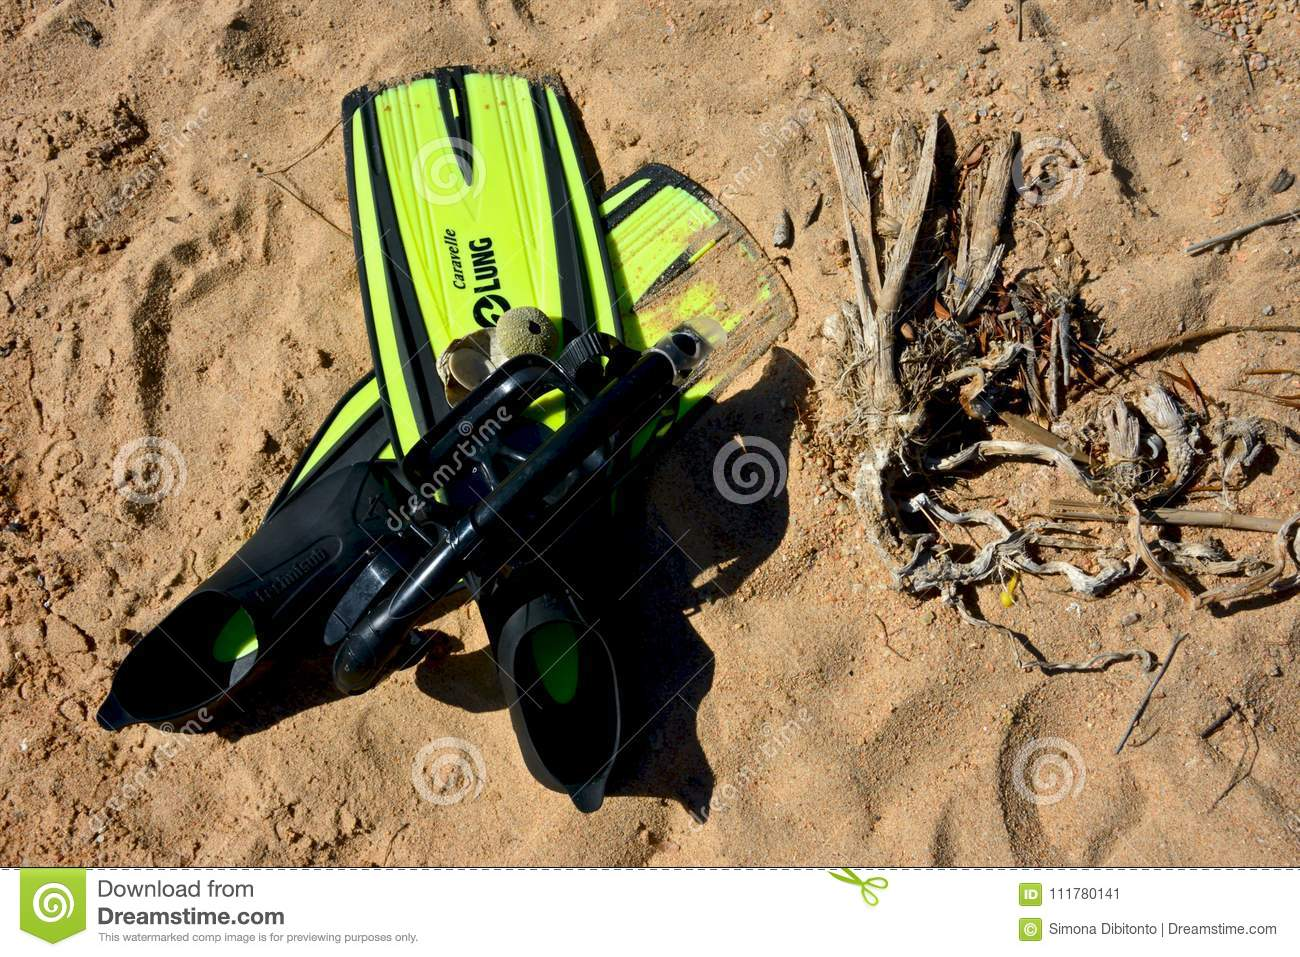 Couple of black and yellow fins with mask and some shells on a sandy beach